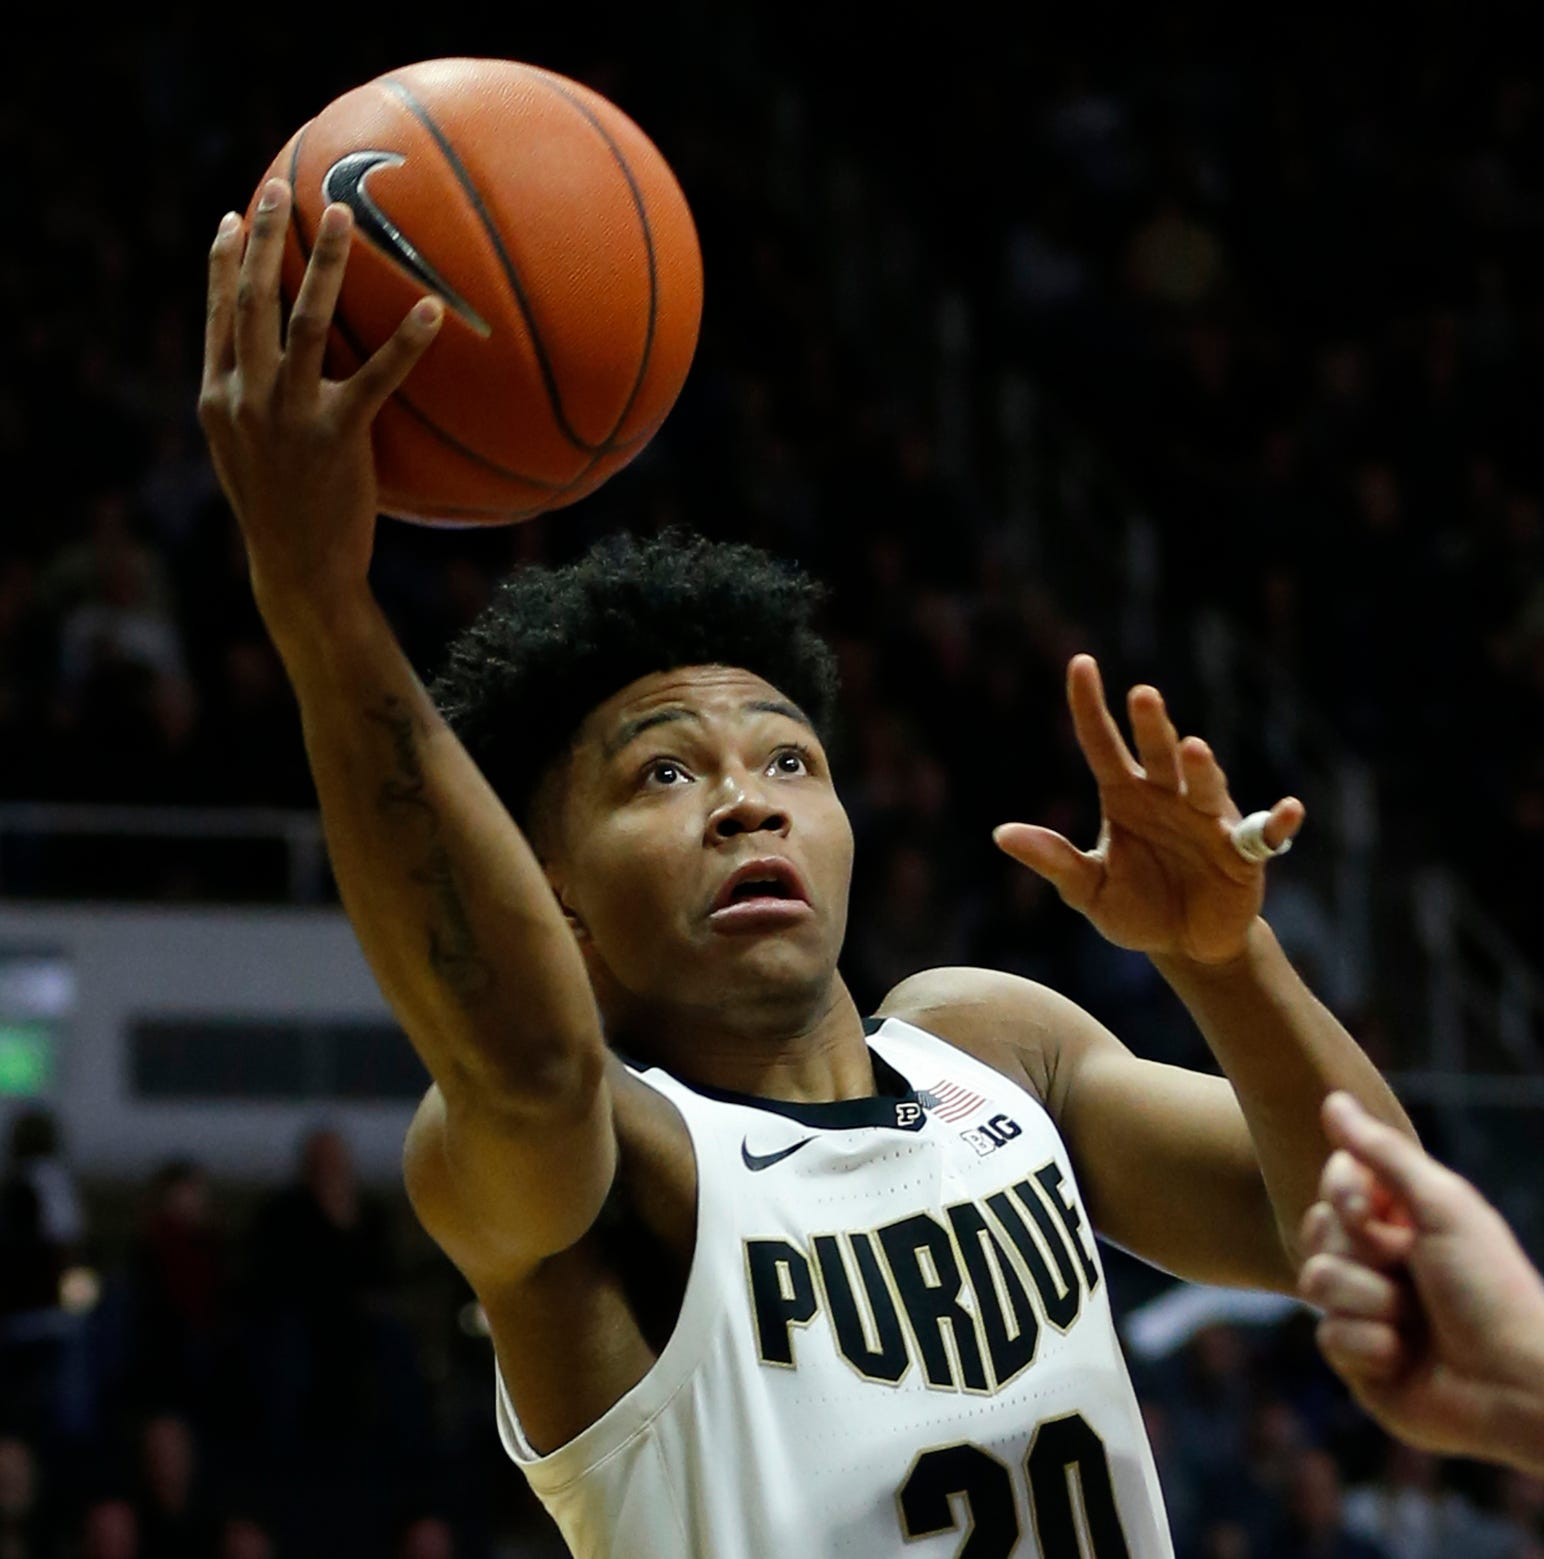 March Madness 2019: Purdue fans feel cursed after Nojel Eastern ankle injury